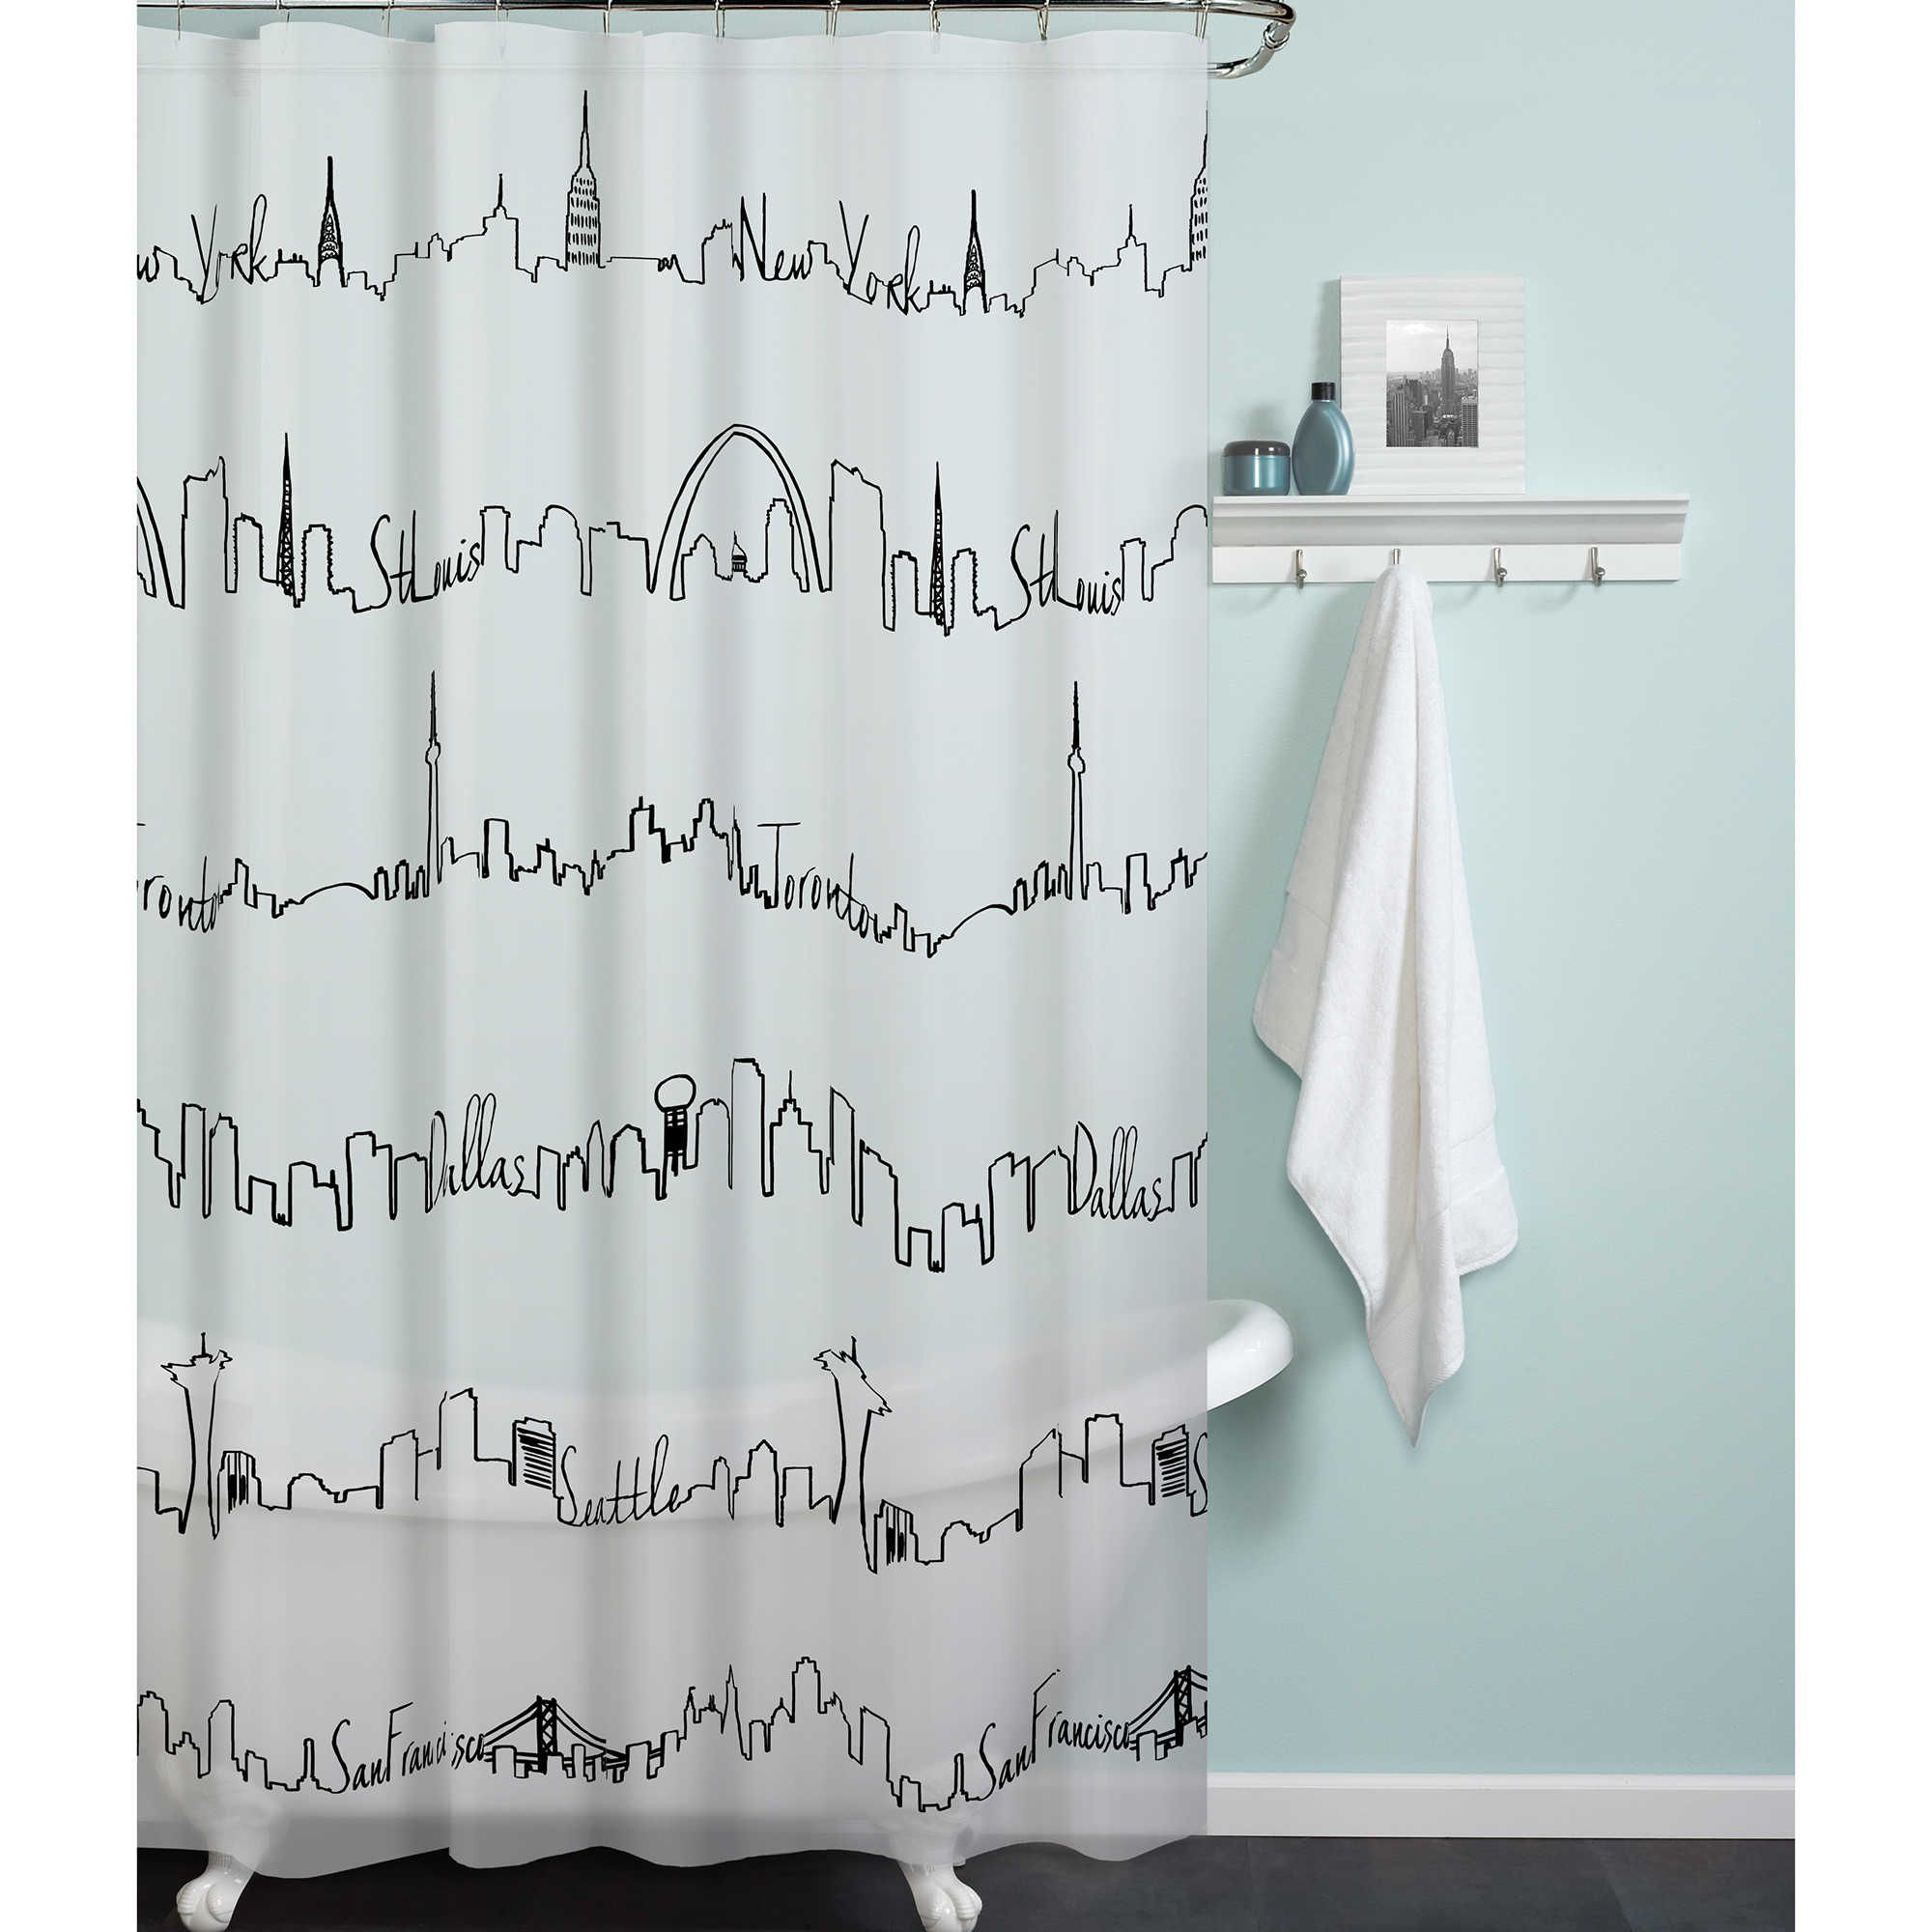 Peva Cityscape Shower Curtain Shower Curtain Main Bathroom Ideas Black White Shower Curtain